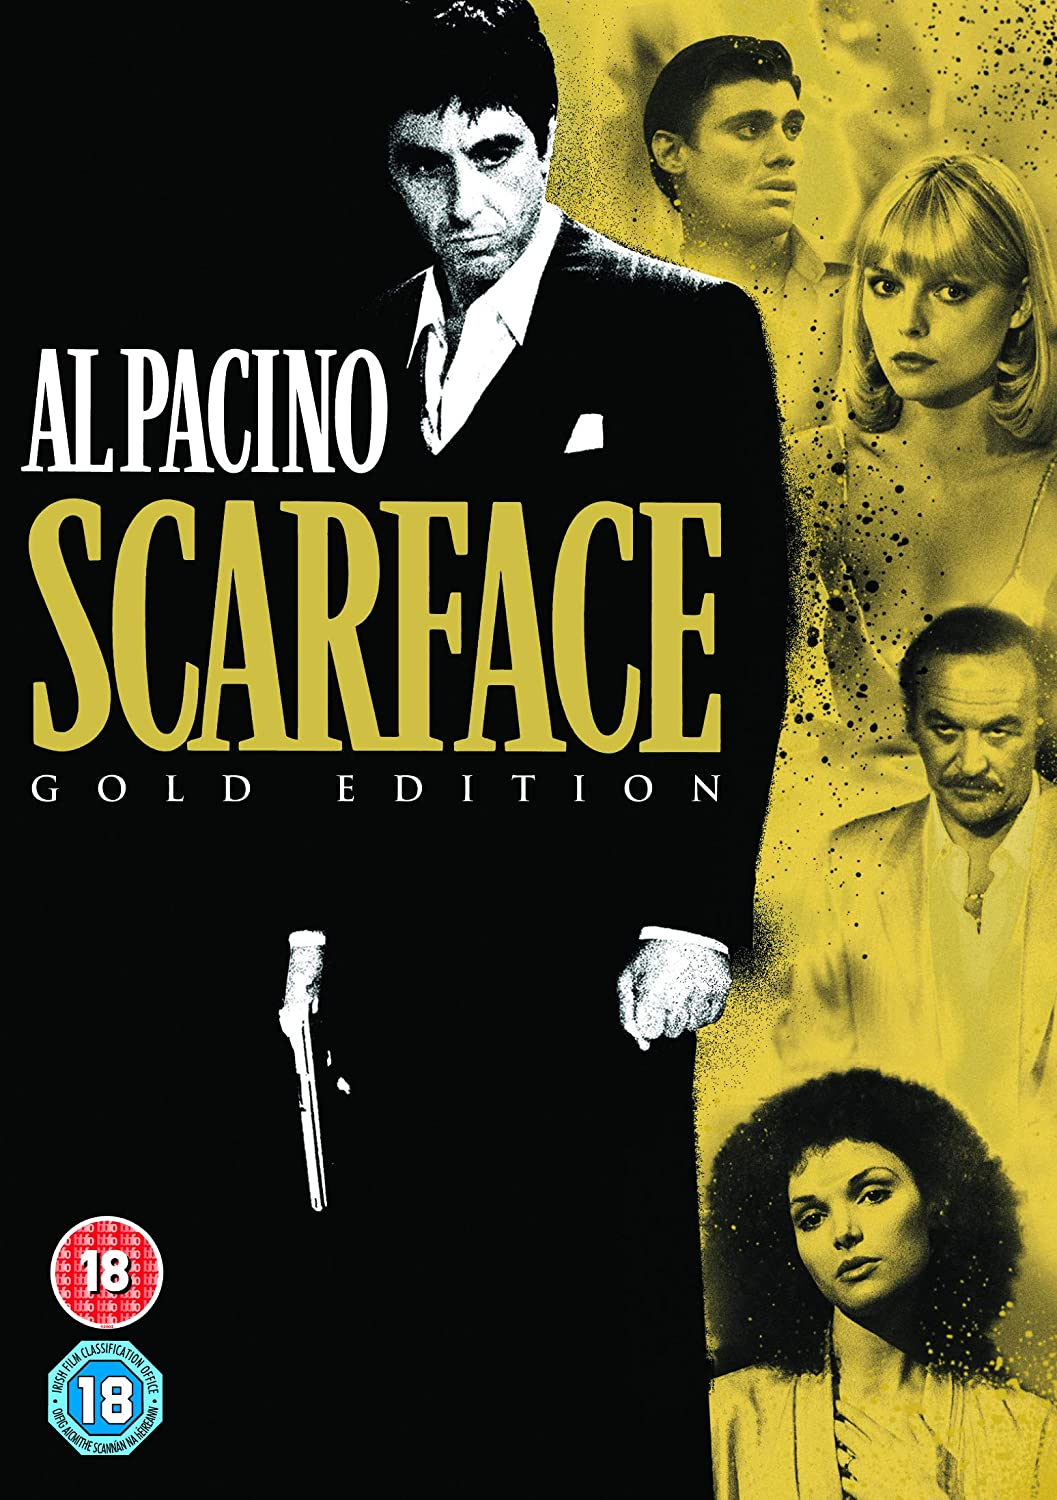 Scarface 1983 - 35th Anniversary [DVD] [2019]